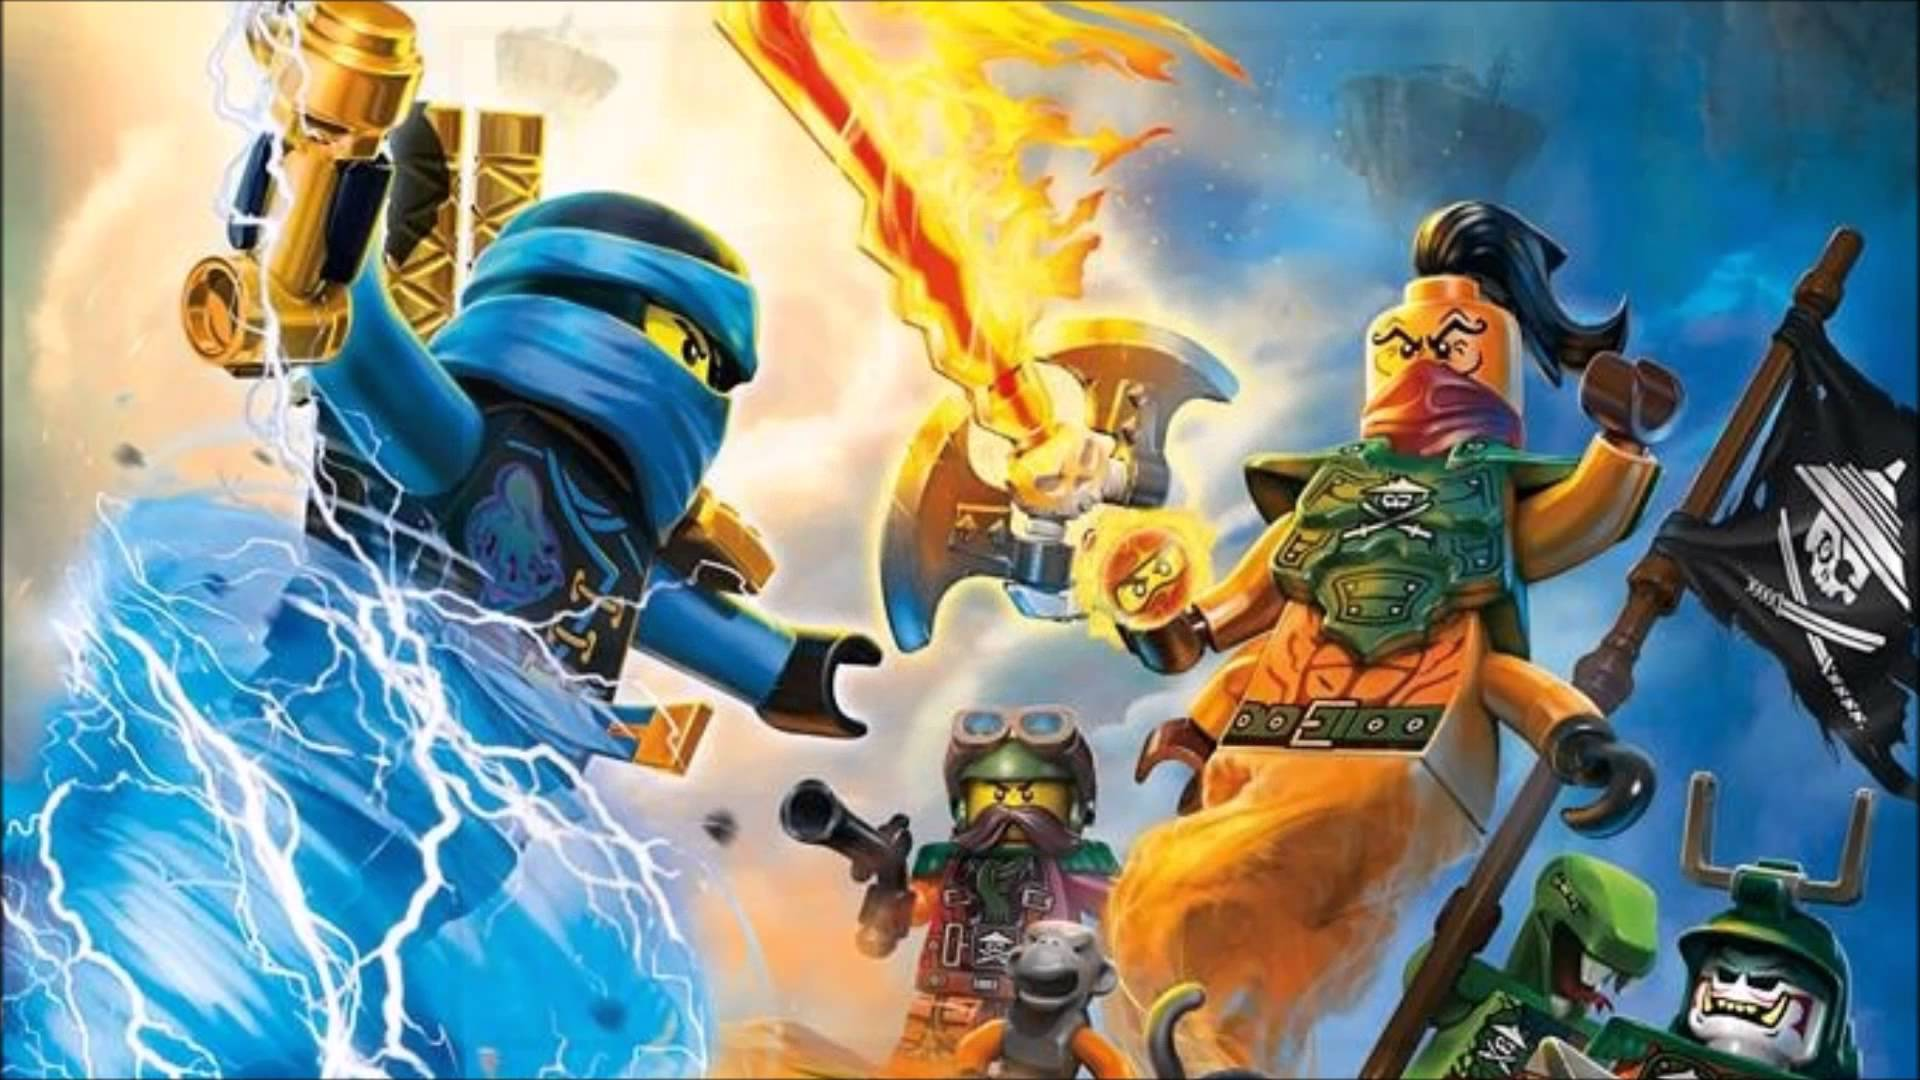 lego ninjago wallpaper high - photo #7